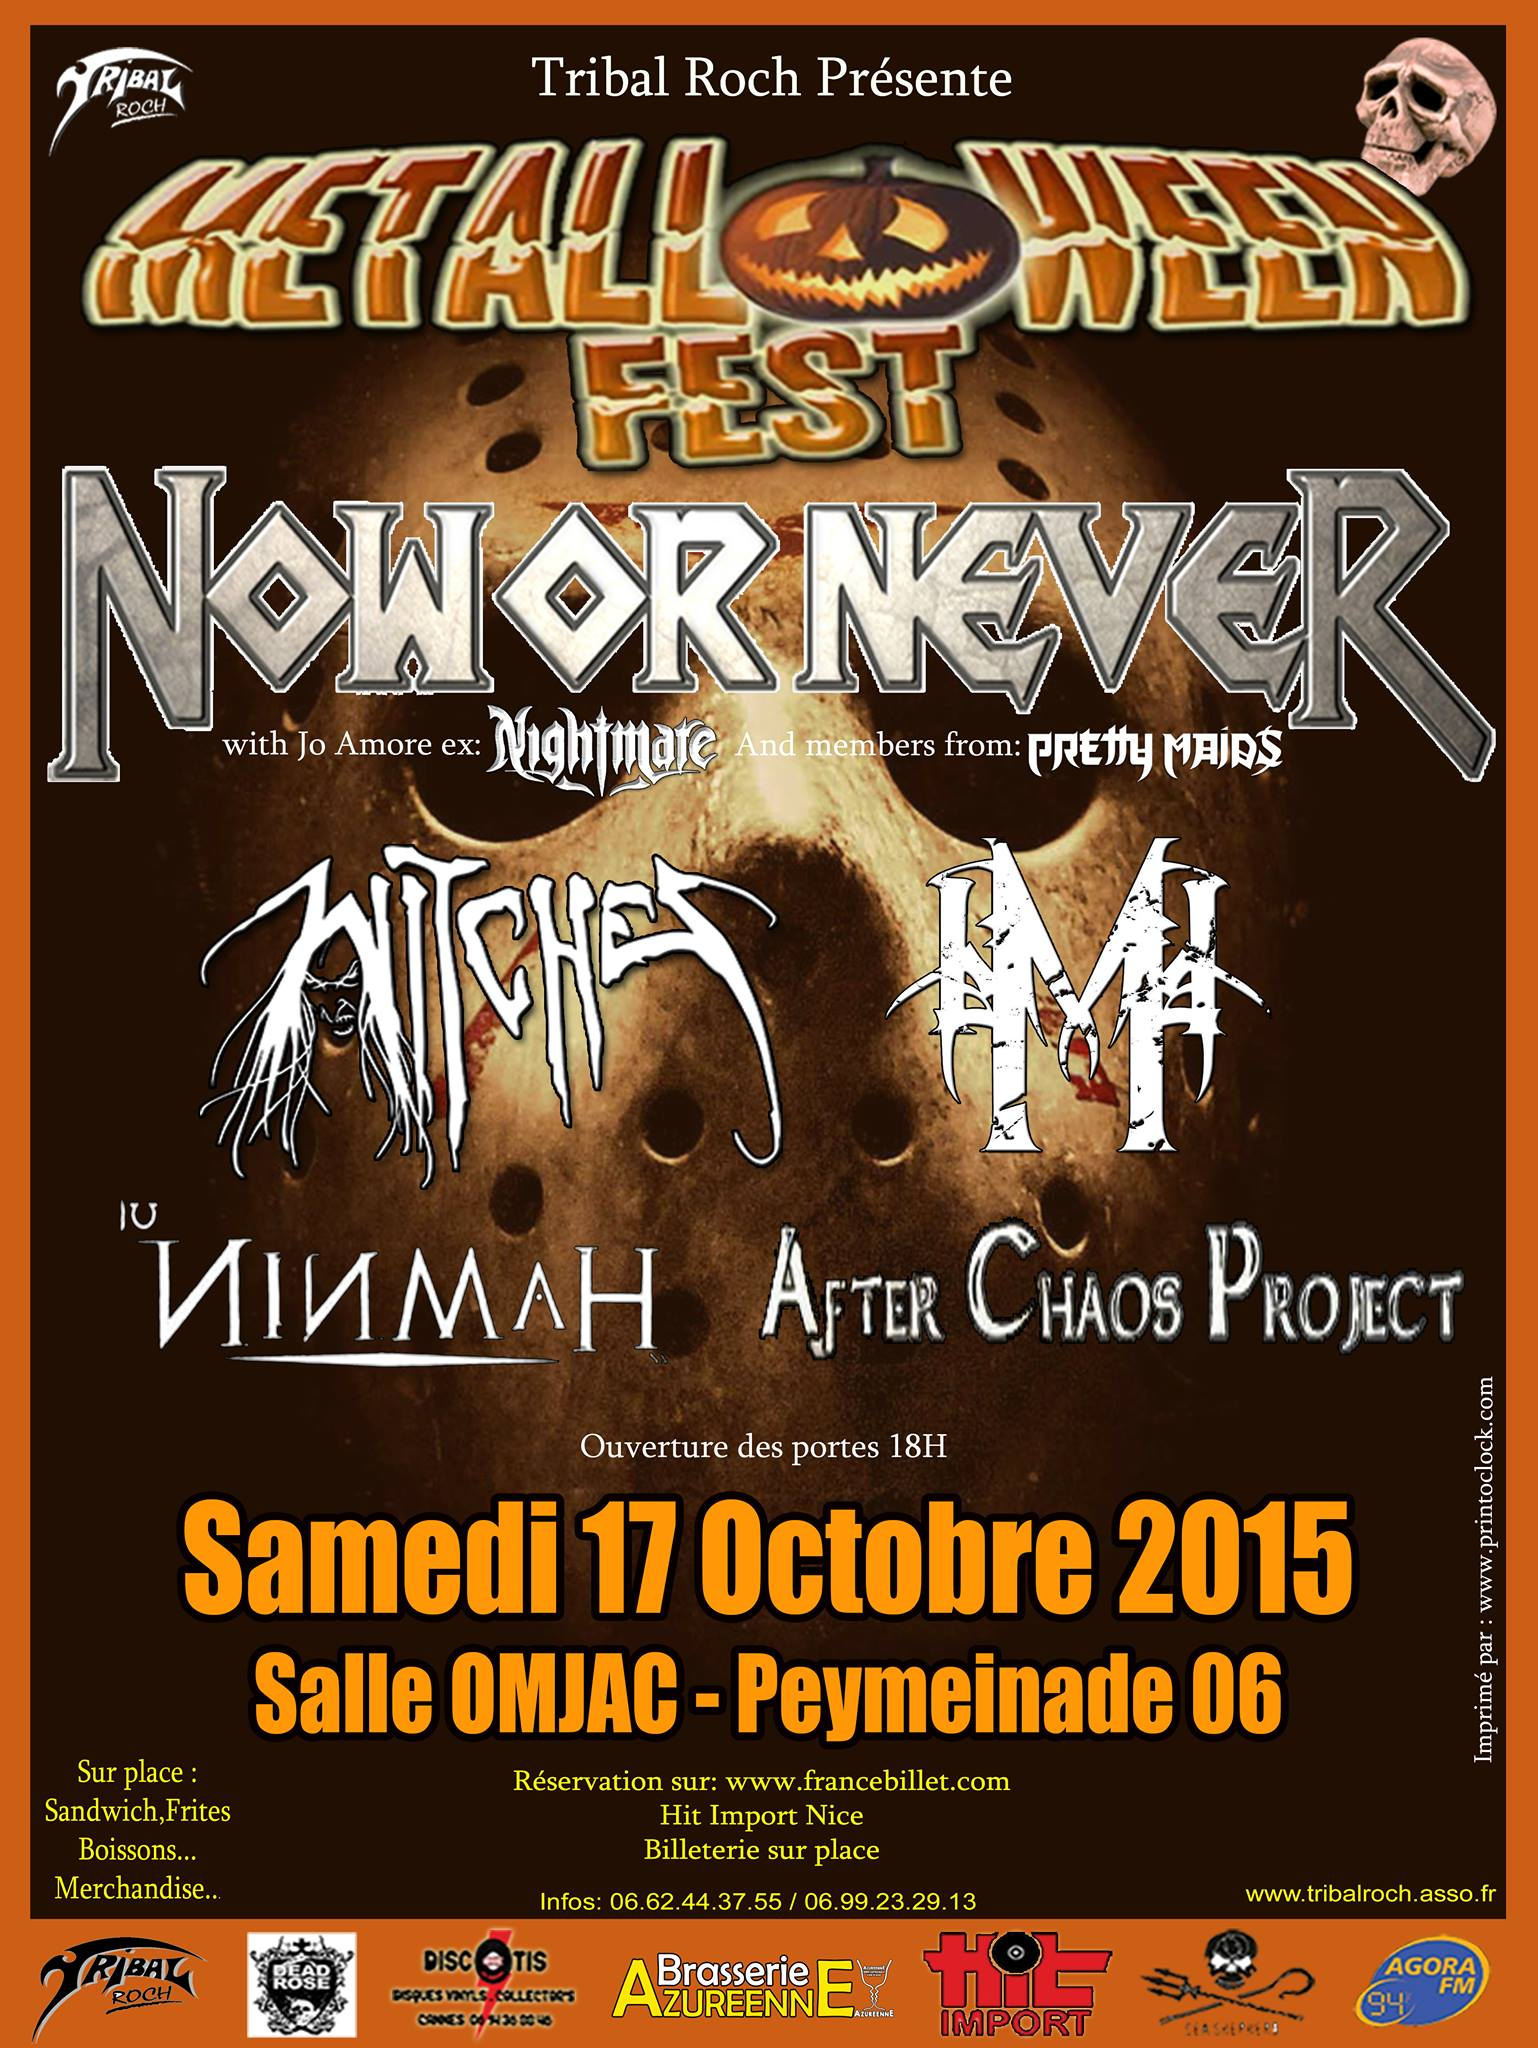 Witches flyer Metalloween Festival : Now or Never + Witches + Moghan RA + Ninmah + After Chaos Project @ Witches 'Hunt Europe Tour Salle OMJAC Peymeinade (06), France